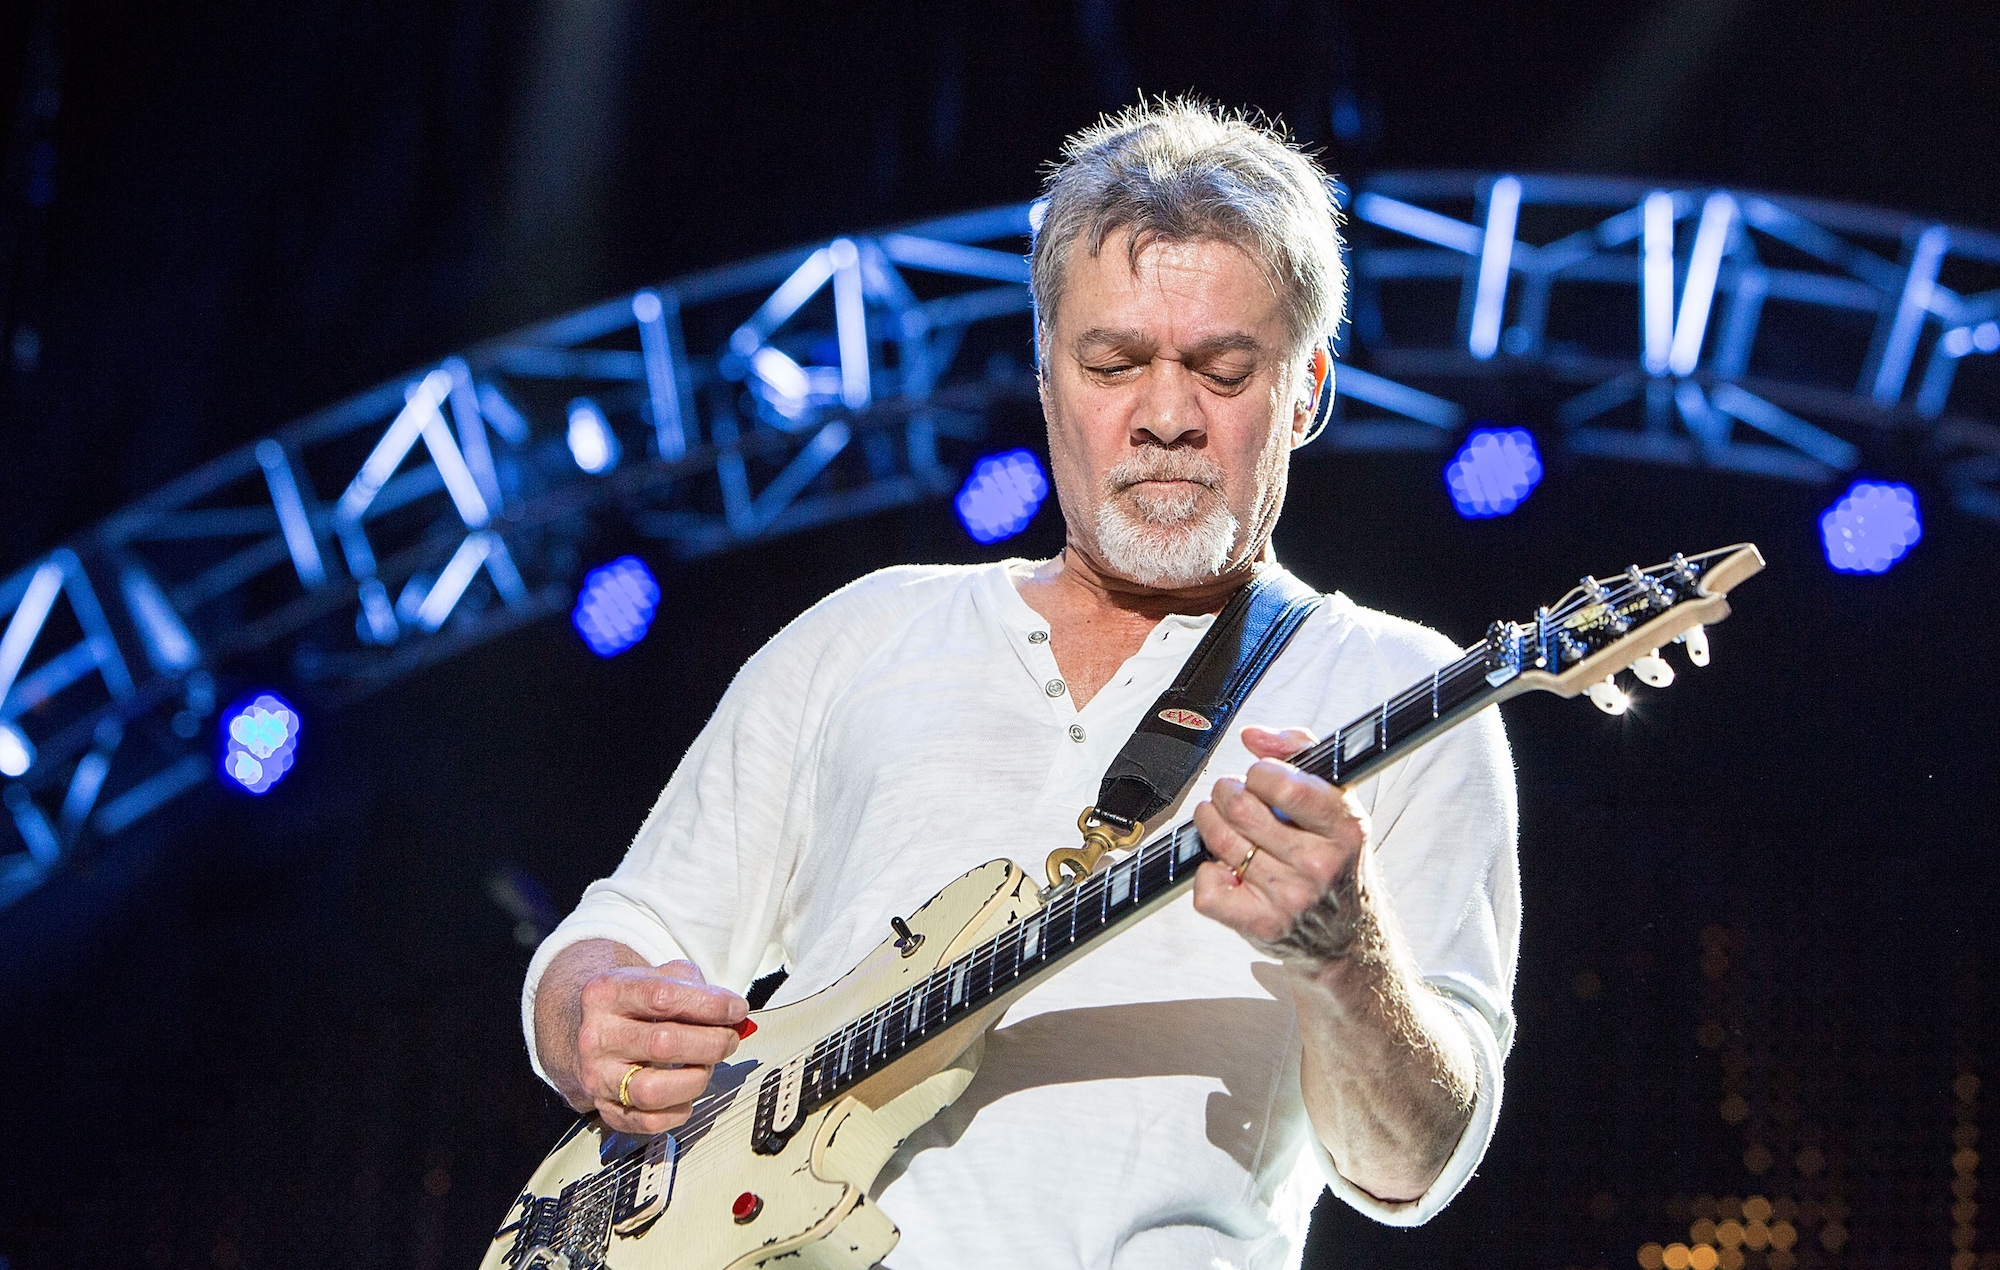 Eddie Van Halen performing in 2015